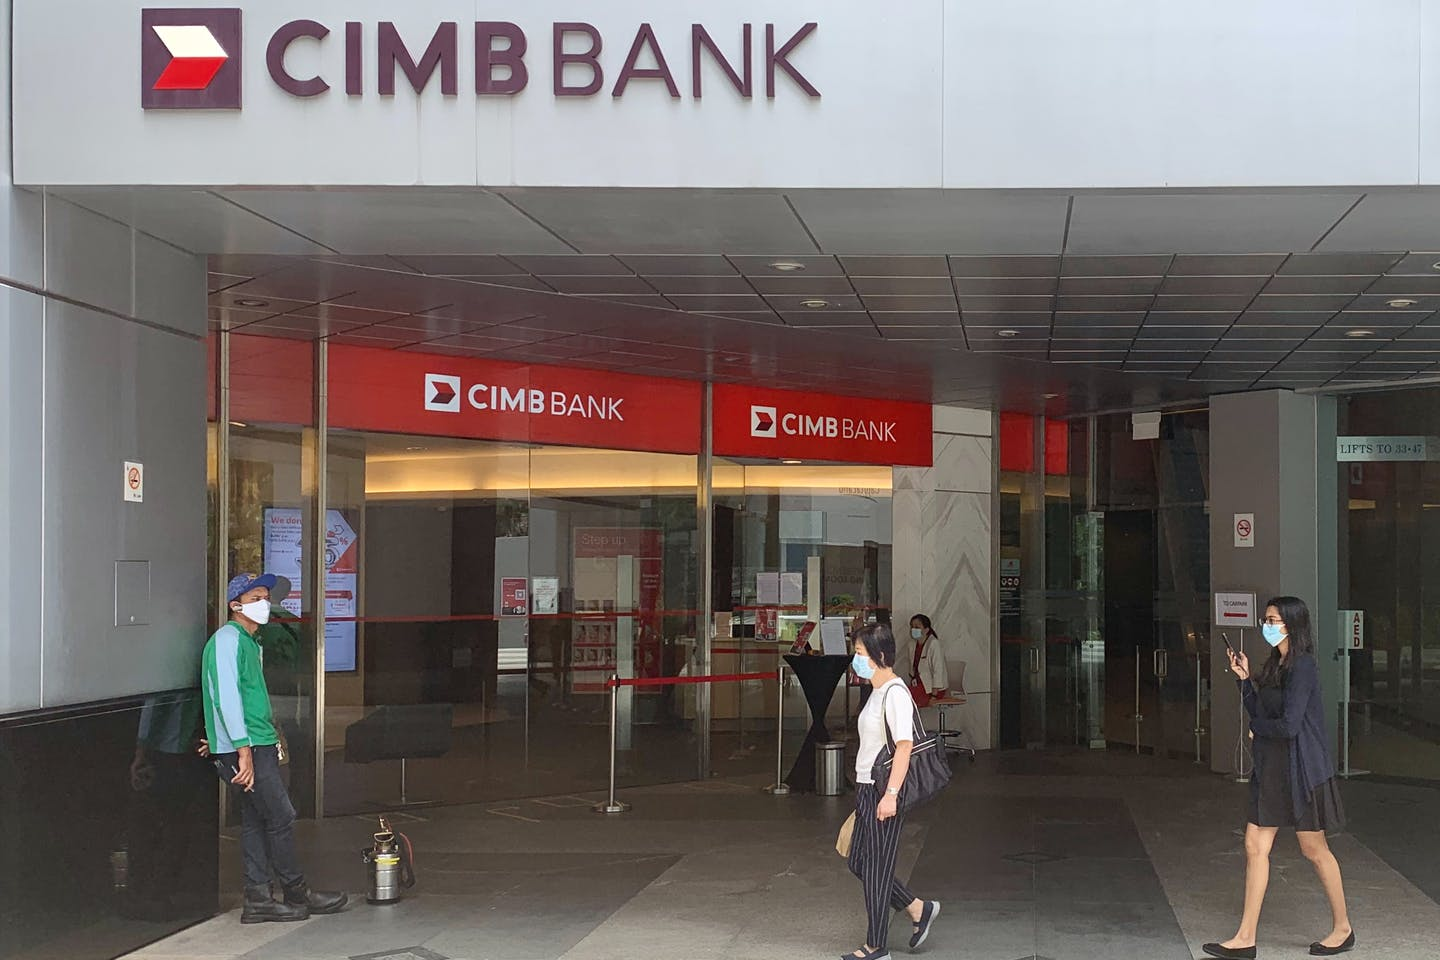 CIMB bank brand in Singapore.